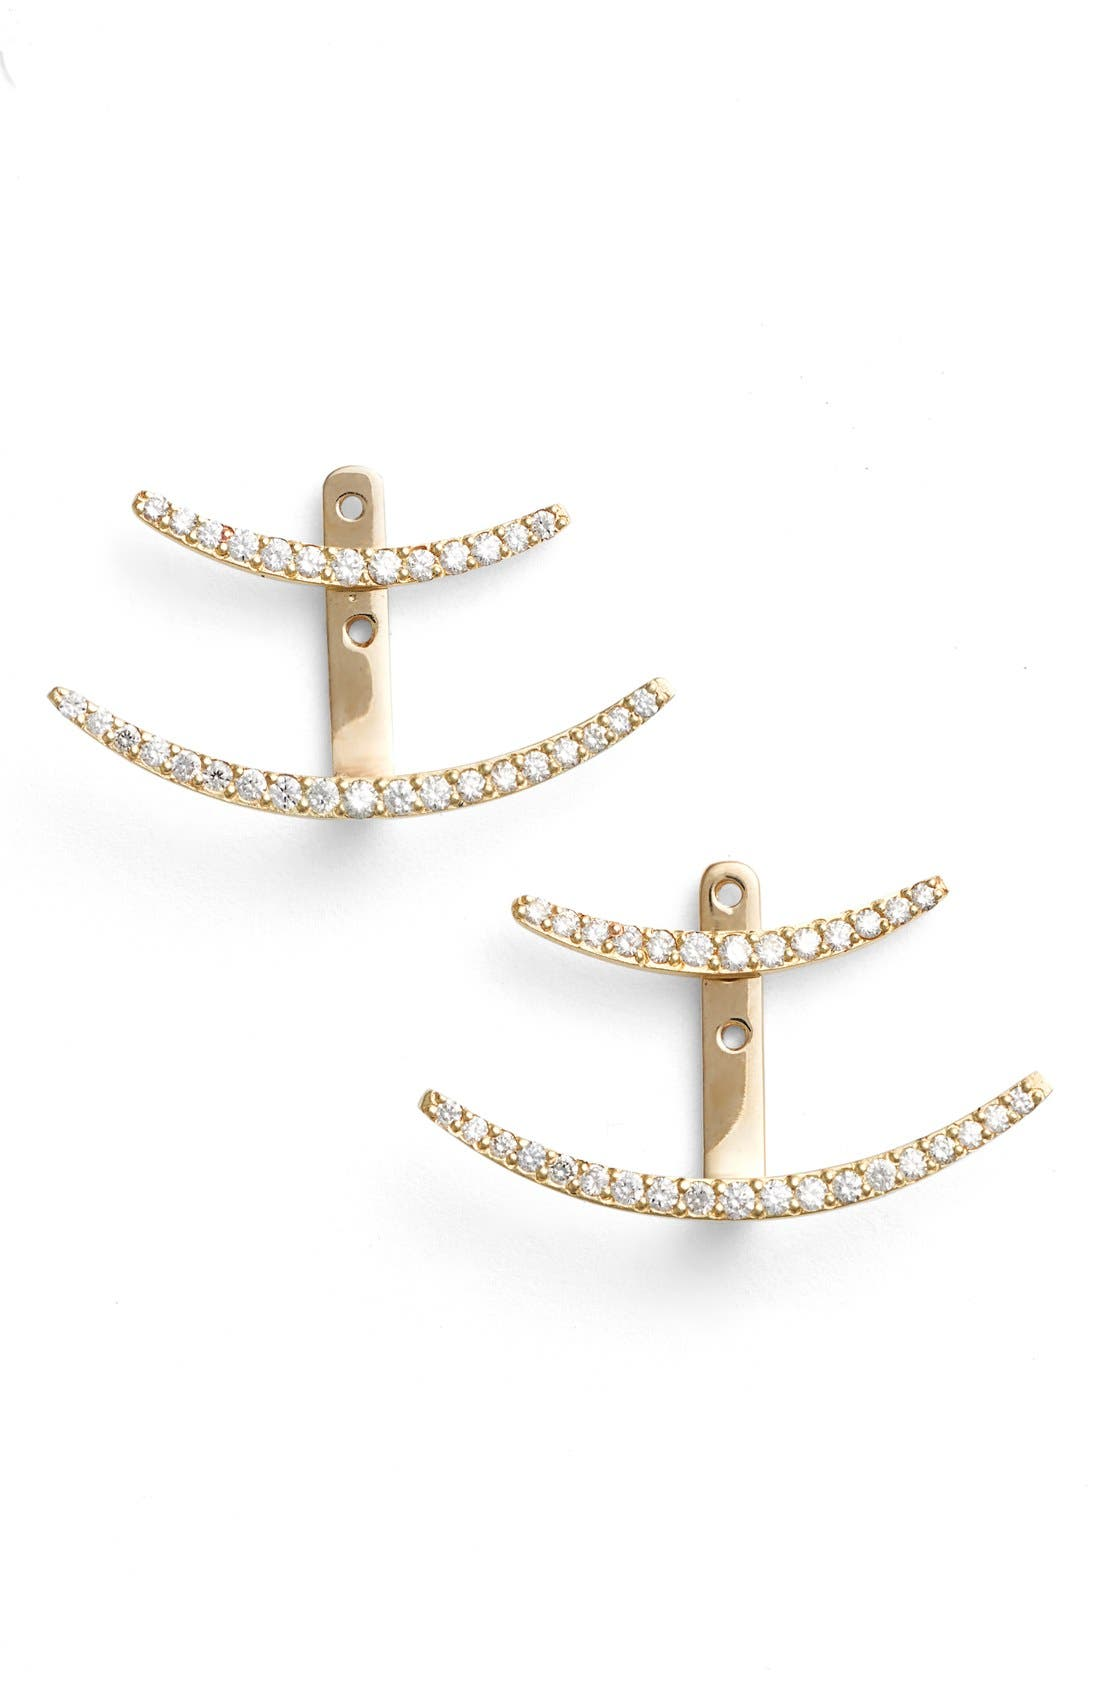 LANA JEWELRY 'Fusion' Ear Cuffs